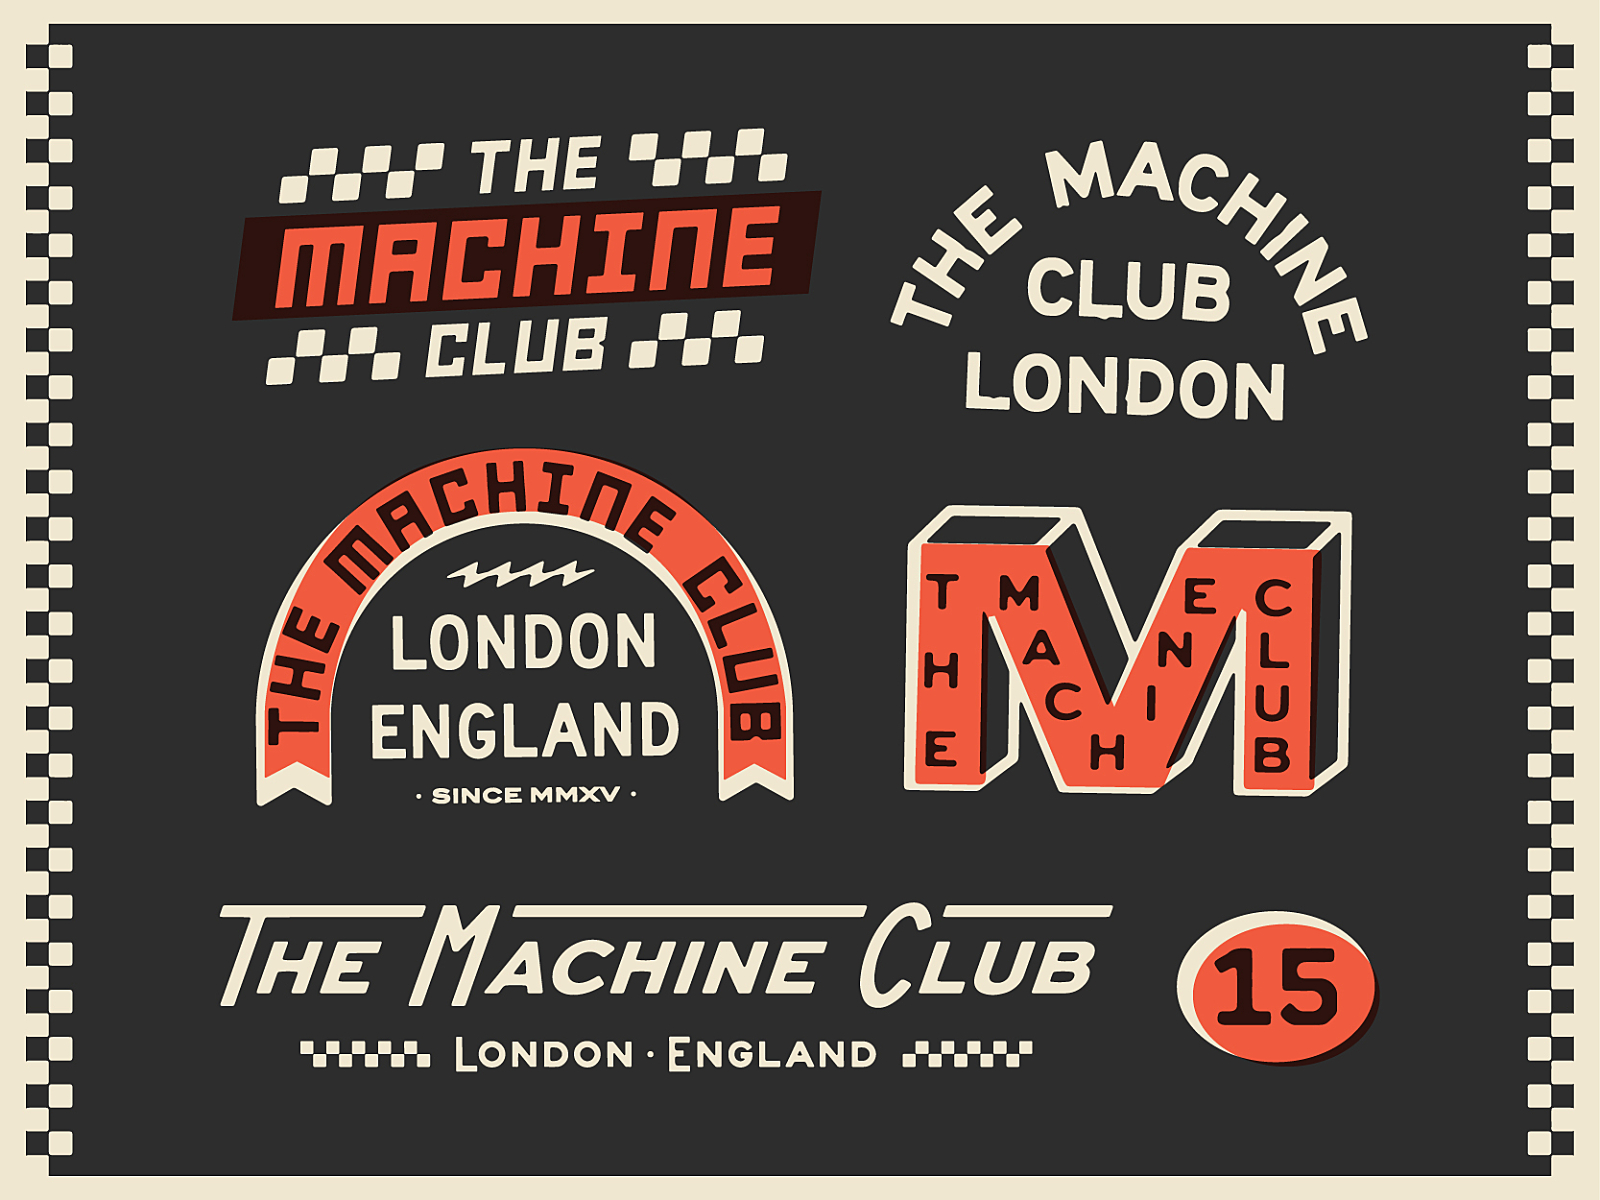 1b1c4dc8 The Machine Club by Luke Harrison on Dribbble